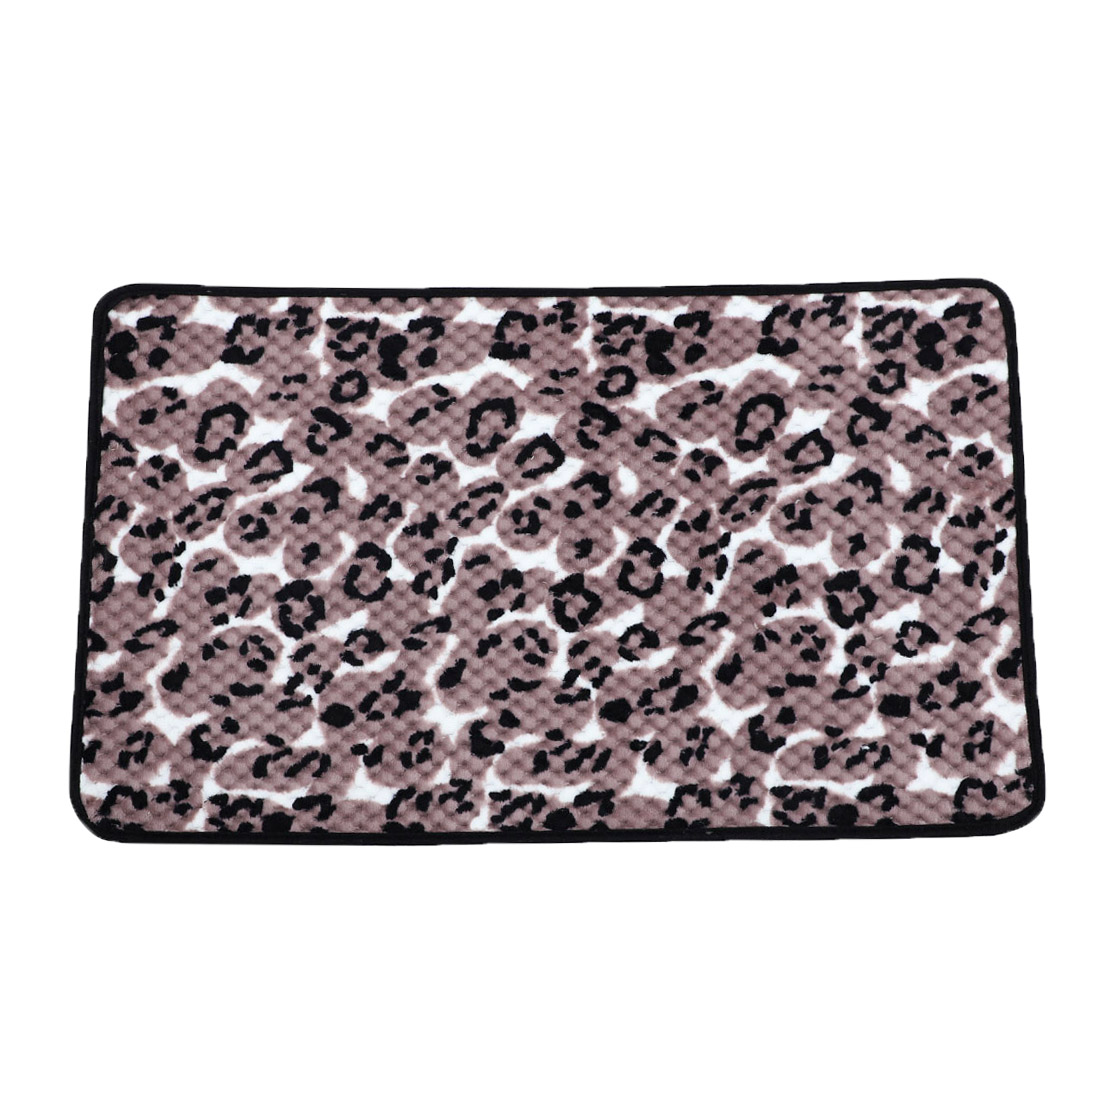 Rosy Brown Black Leopard Print Kitchen Floor Mat Area Rug Carpet 70cm x 45cm